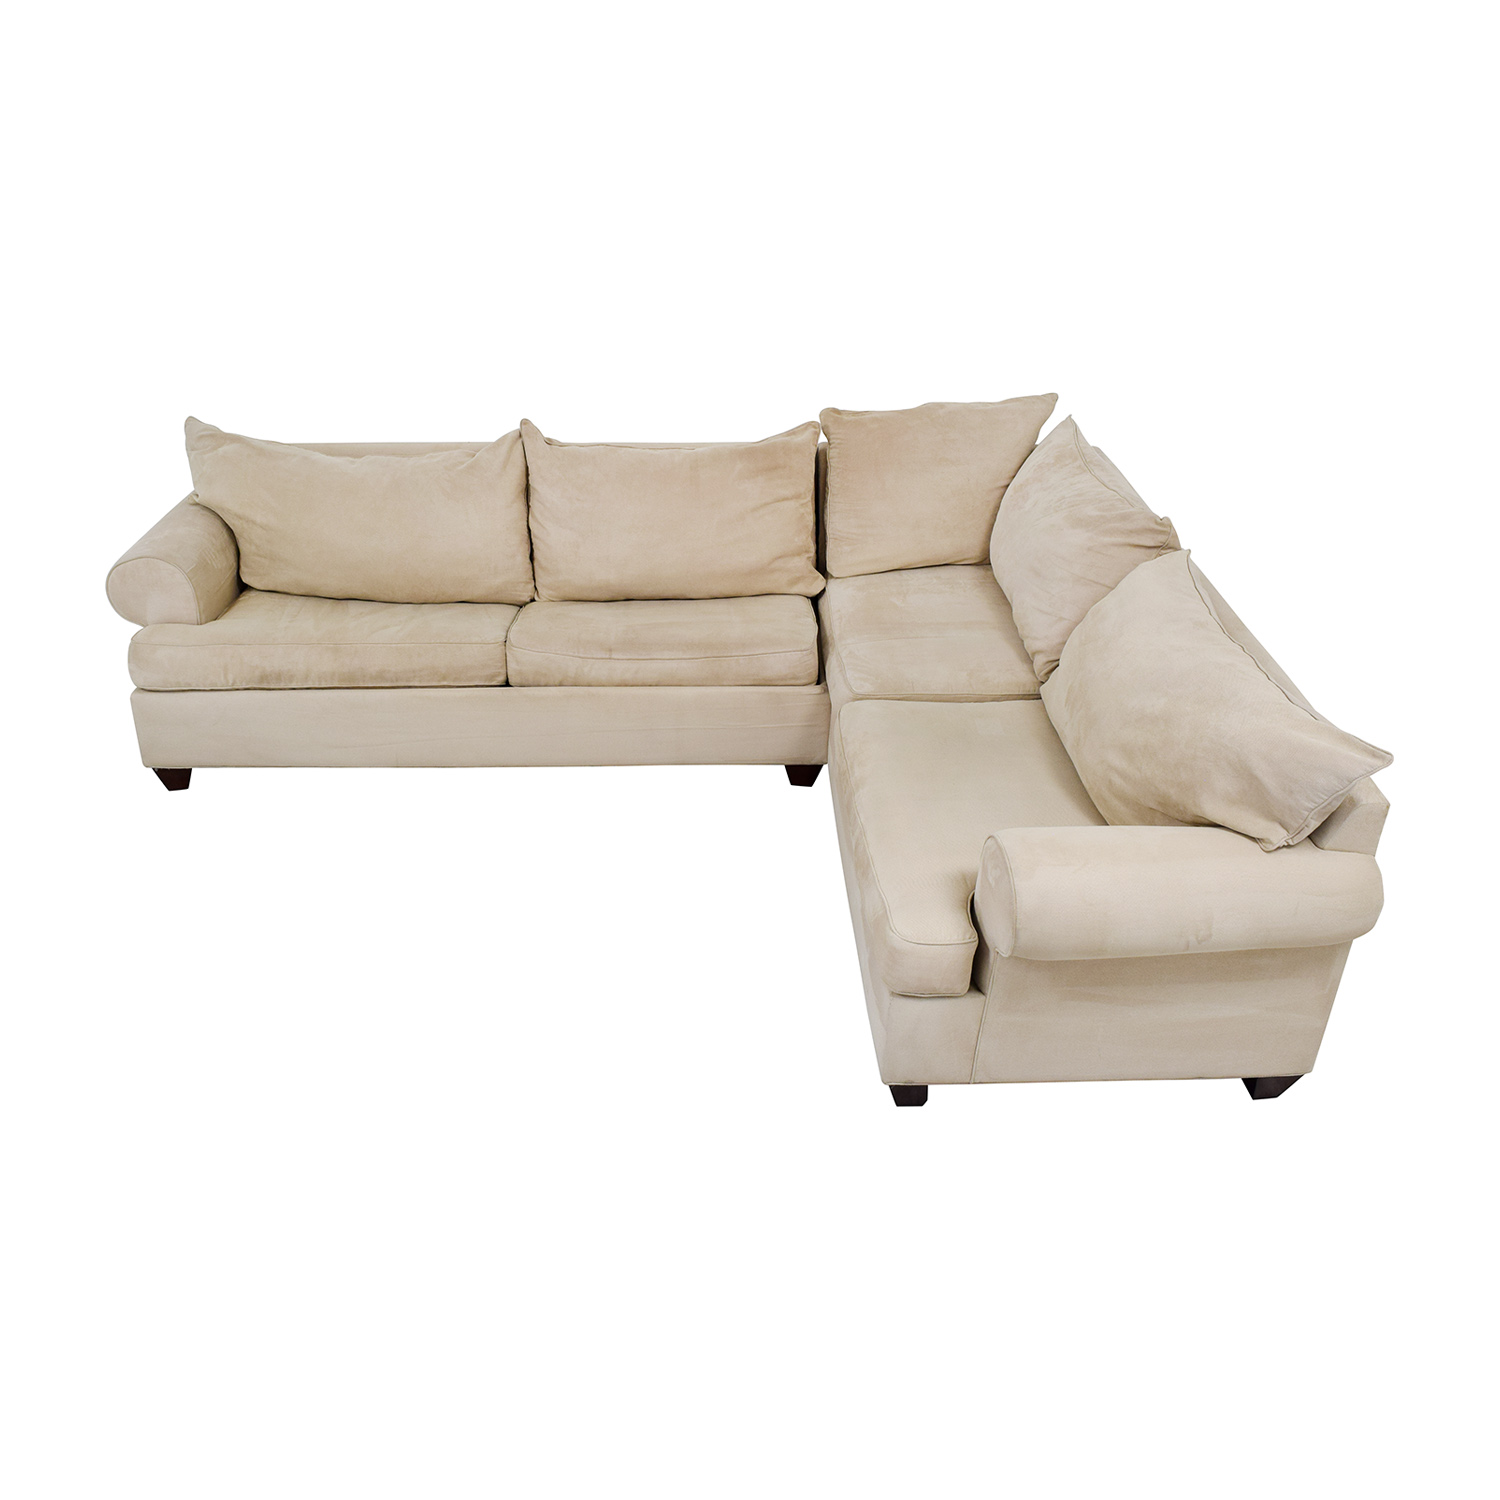 56% OFF - Raymour & Flanigan Raymour & Flanigan Sectional Sleeper Sofa /  Sofas